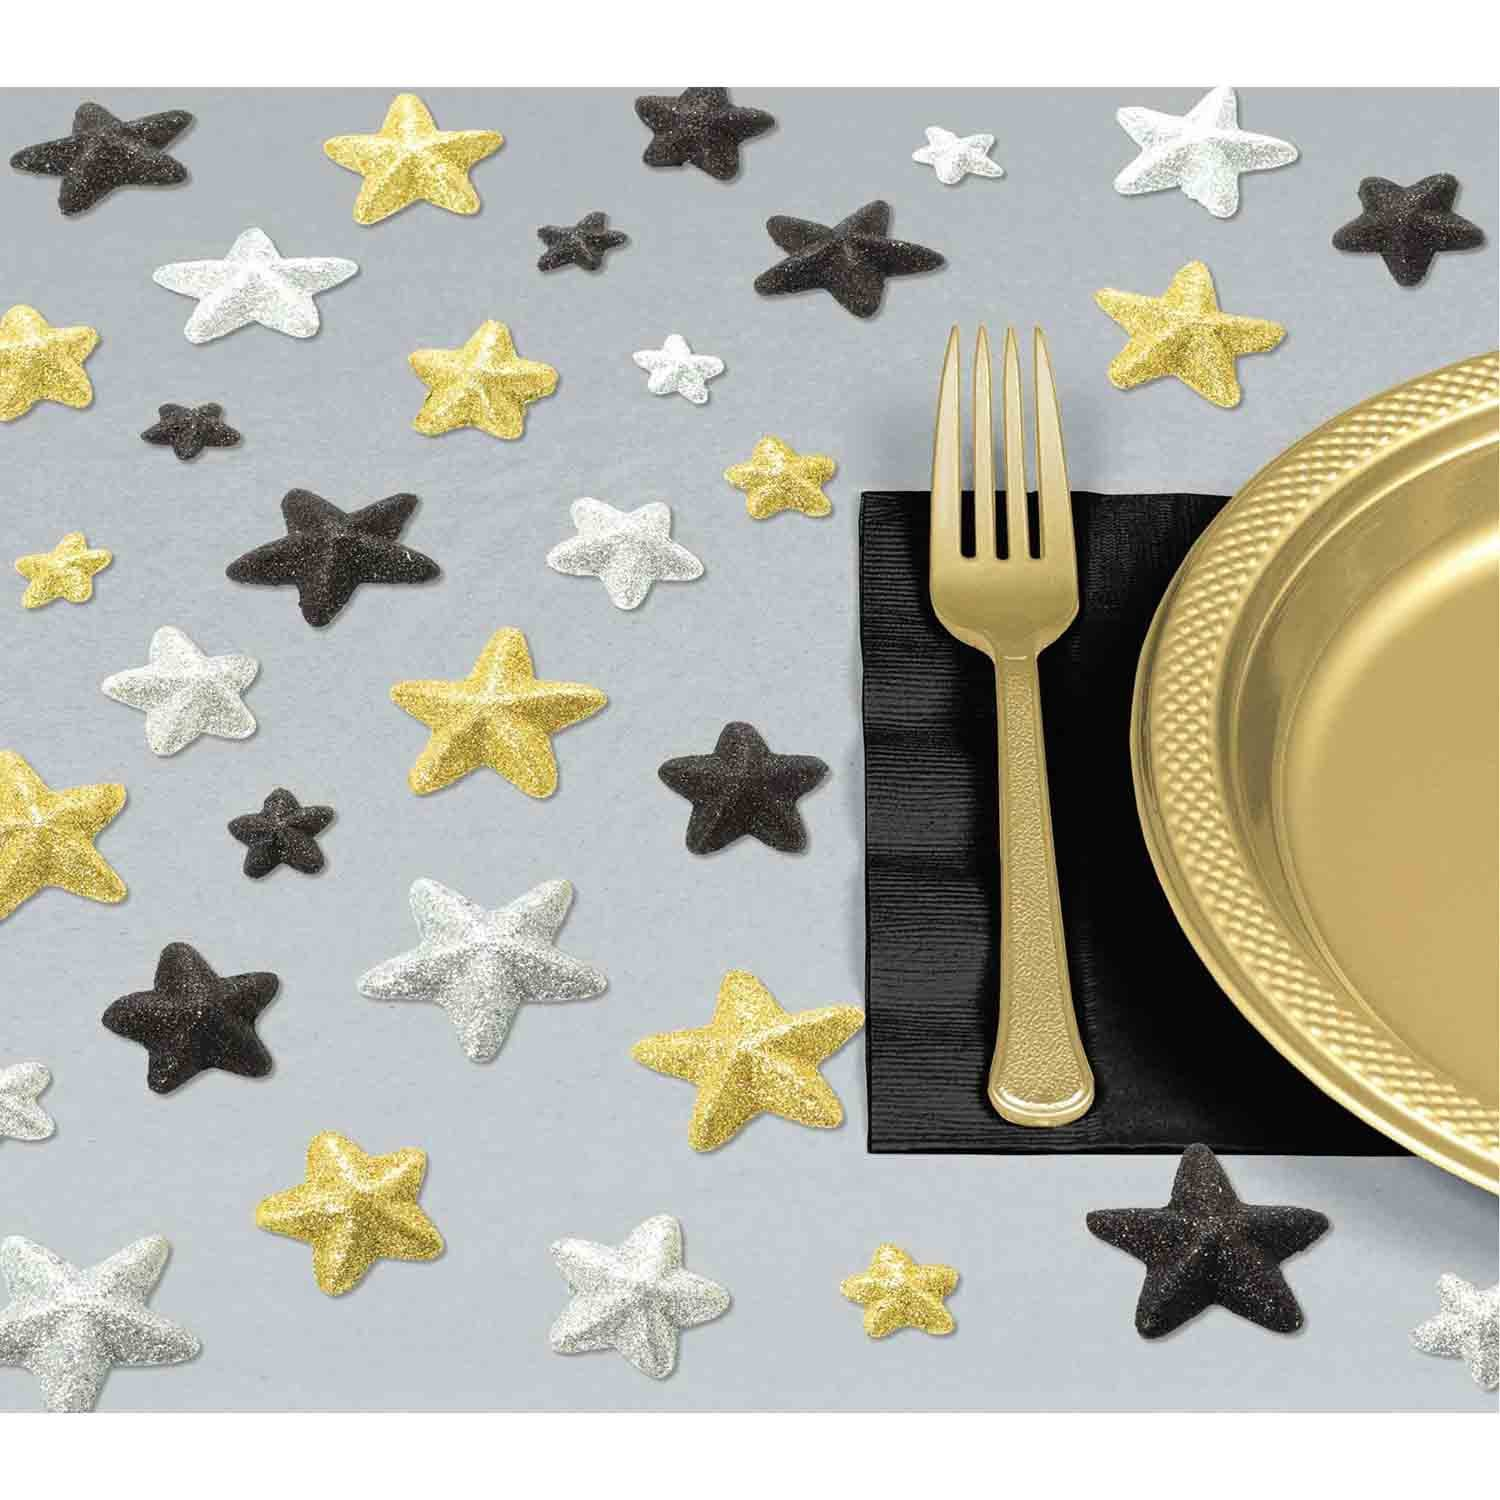 Glitz & Glam Table Star Scatters Glittered Foam Sprinkles